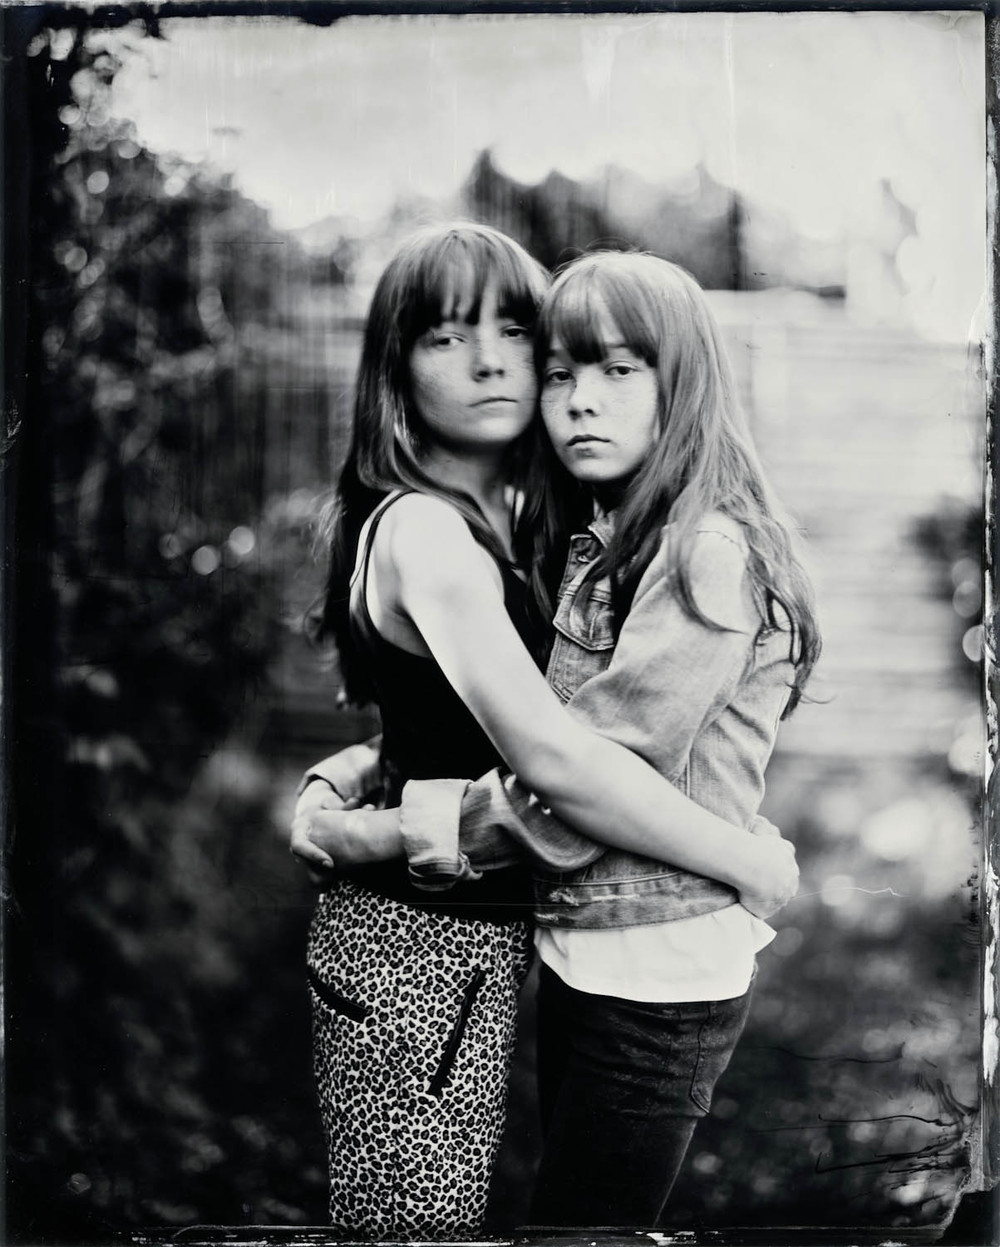 emil_ryge_tintype_wetplate_youth_wetplate-scan329_edit.jpg